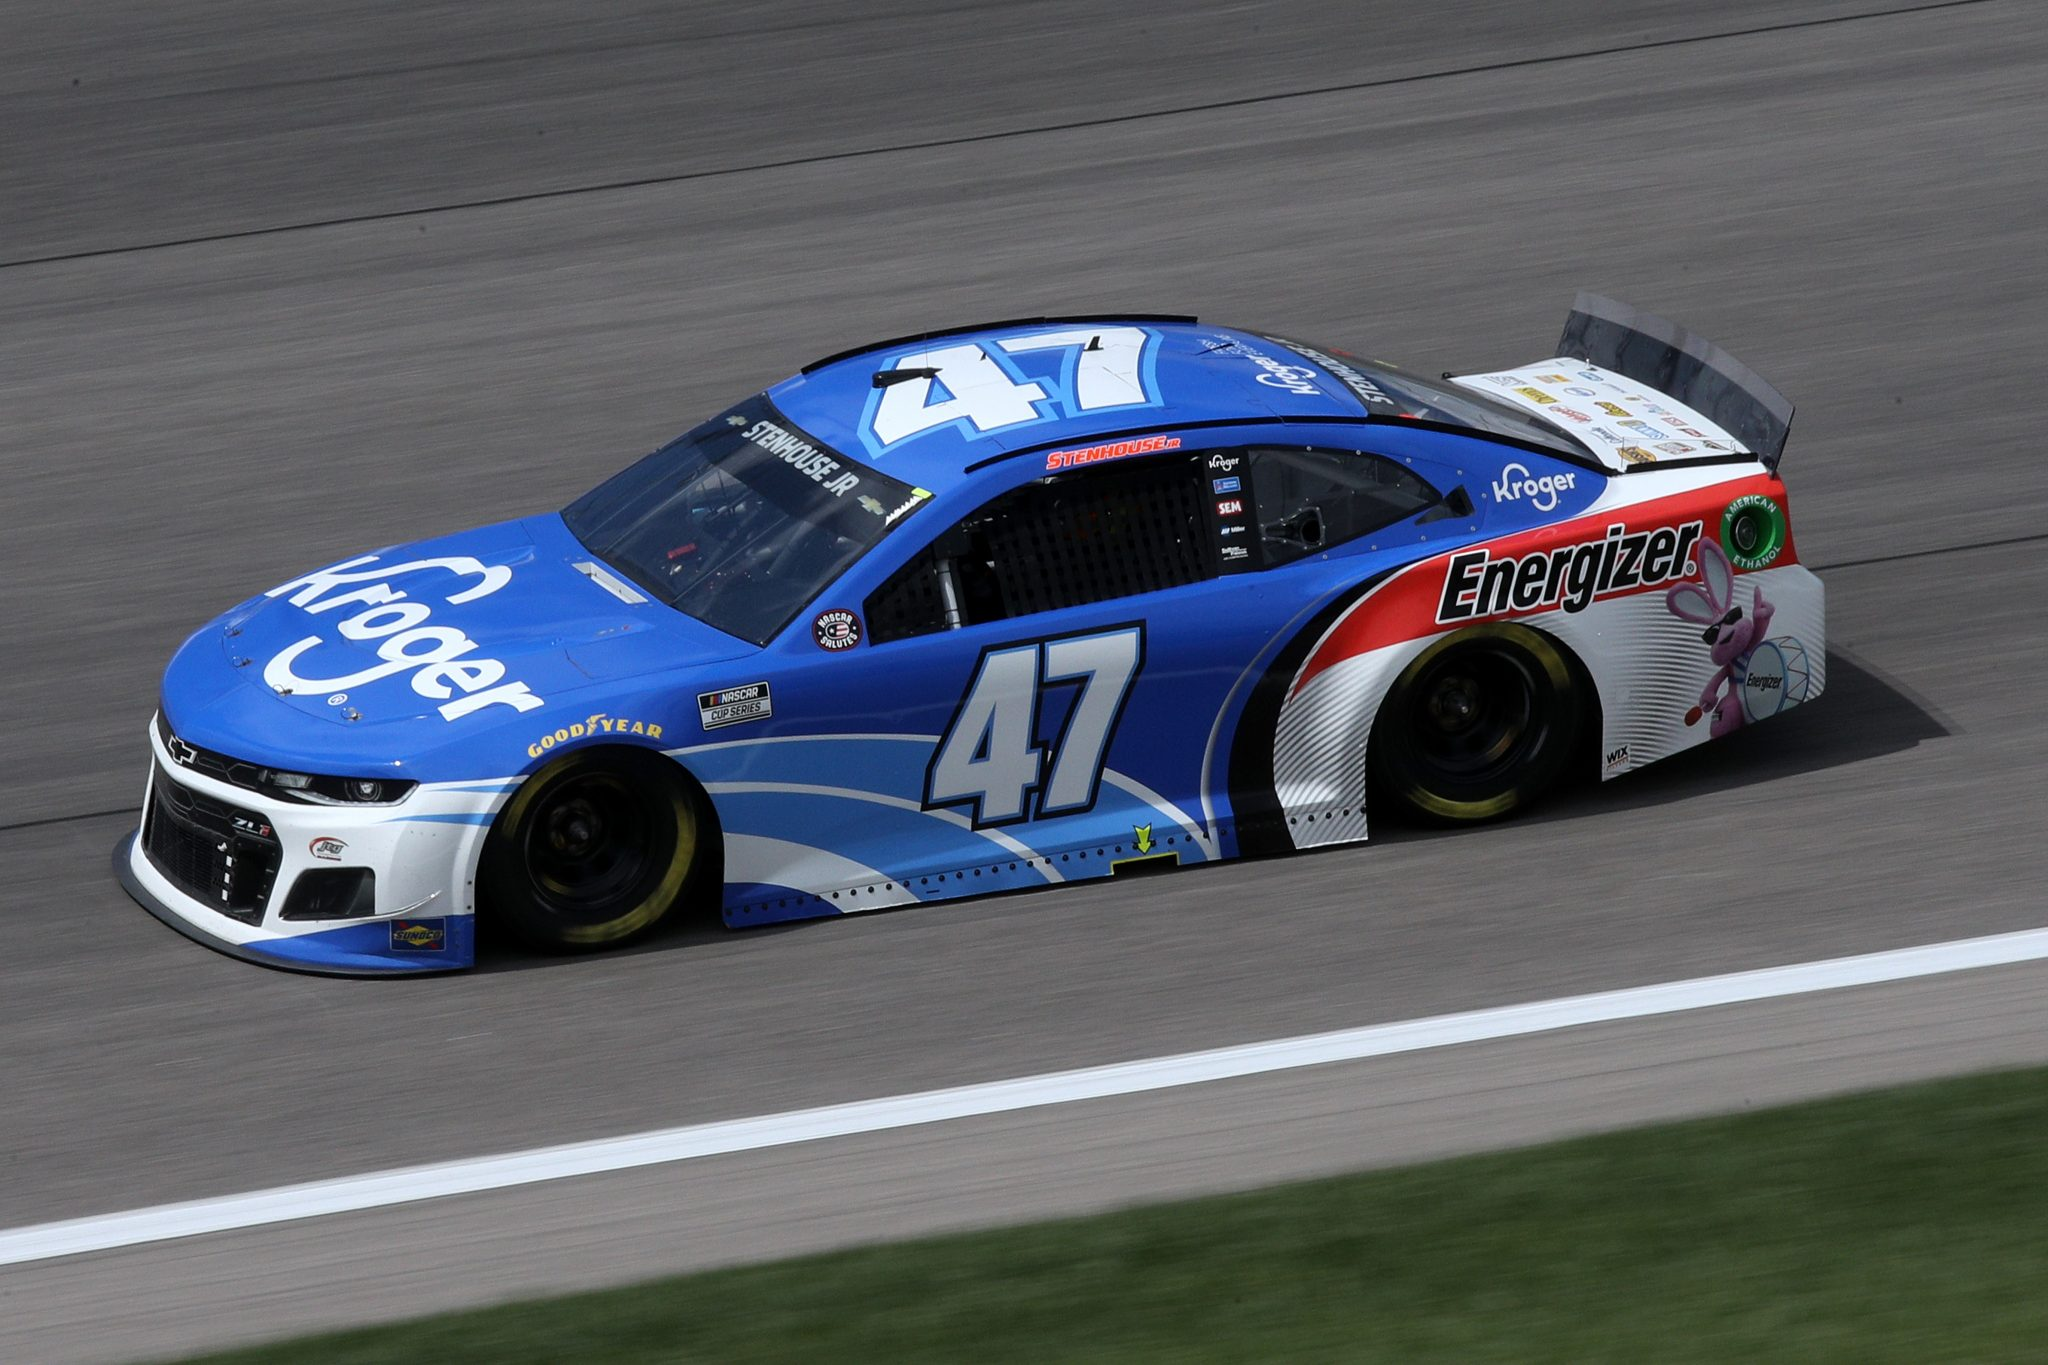 KANSAS CITY, KANSAS - MAY 02: Ricky Stenhouse Jr., driver of the #47 Kroger/Energizer Chevrolet, drives during the NASCAR Cup Series Buschy McBusch Race 400 at Kansas Speedway on May 02, 2021 in Kansas City, Kansas. (Photo by Sean Gardner/Getty Images) | Getty Images